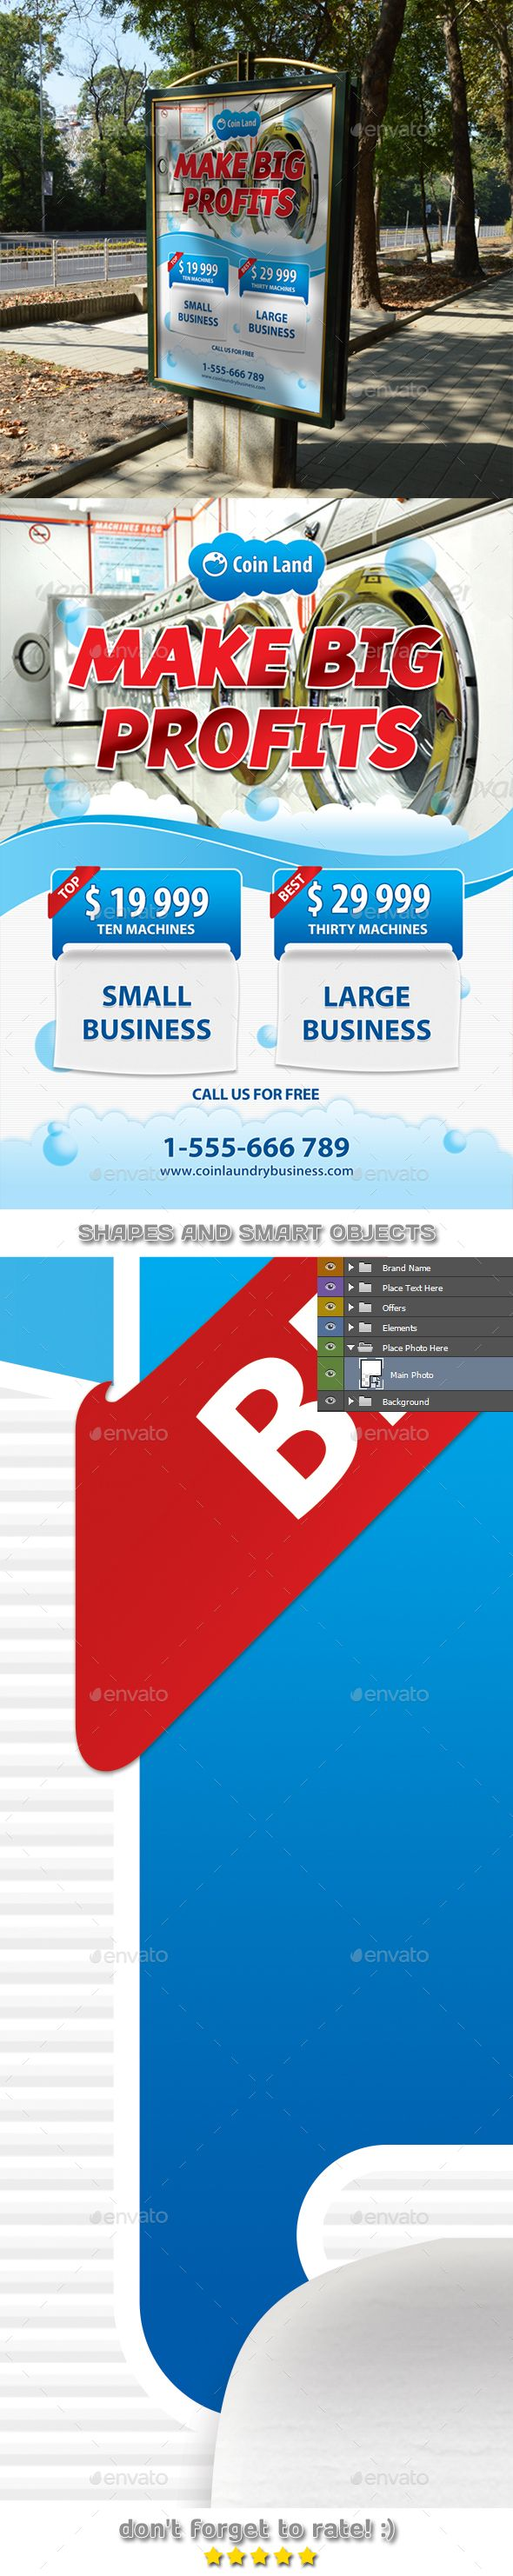 Coin laundry business poster template 43 signage templates coin laundry business poster template 43 accmission Gallery